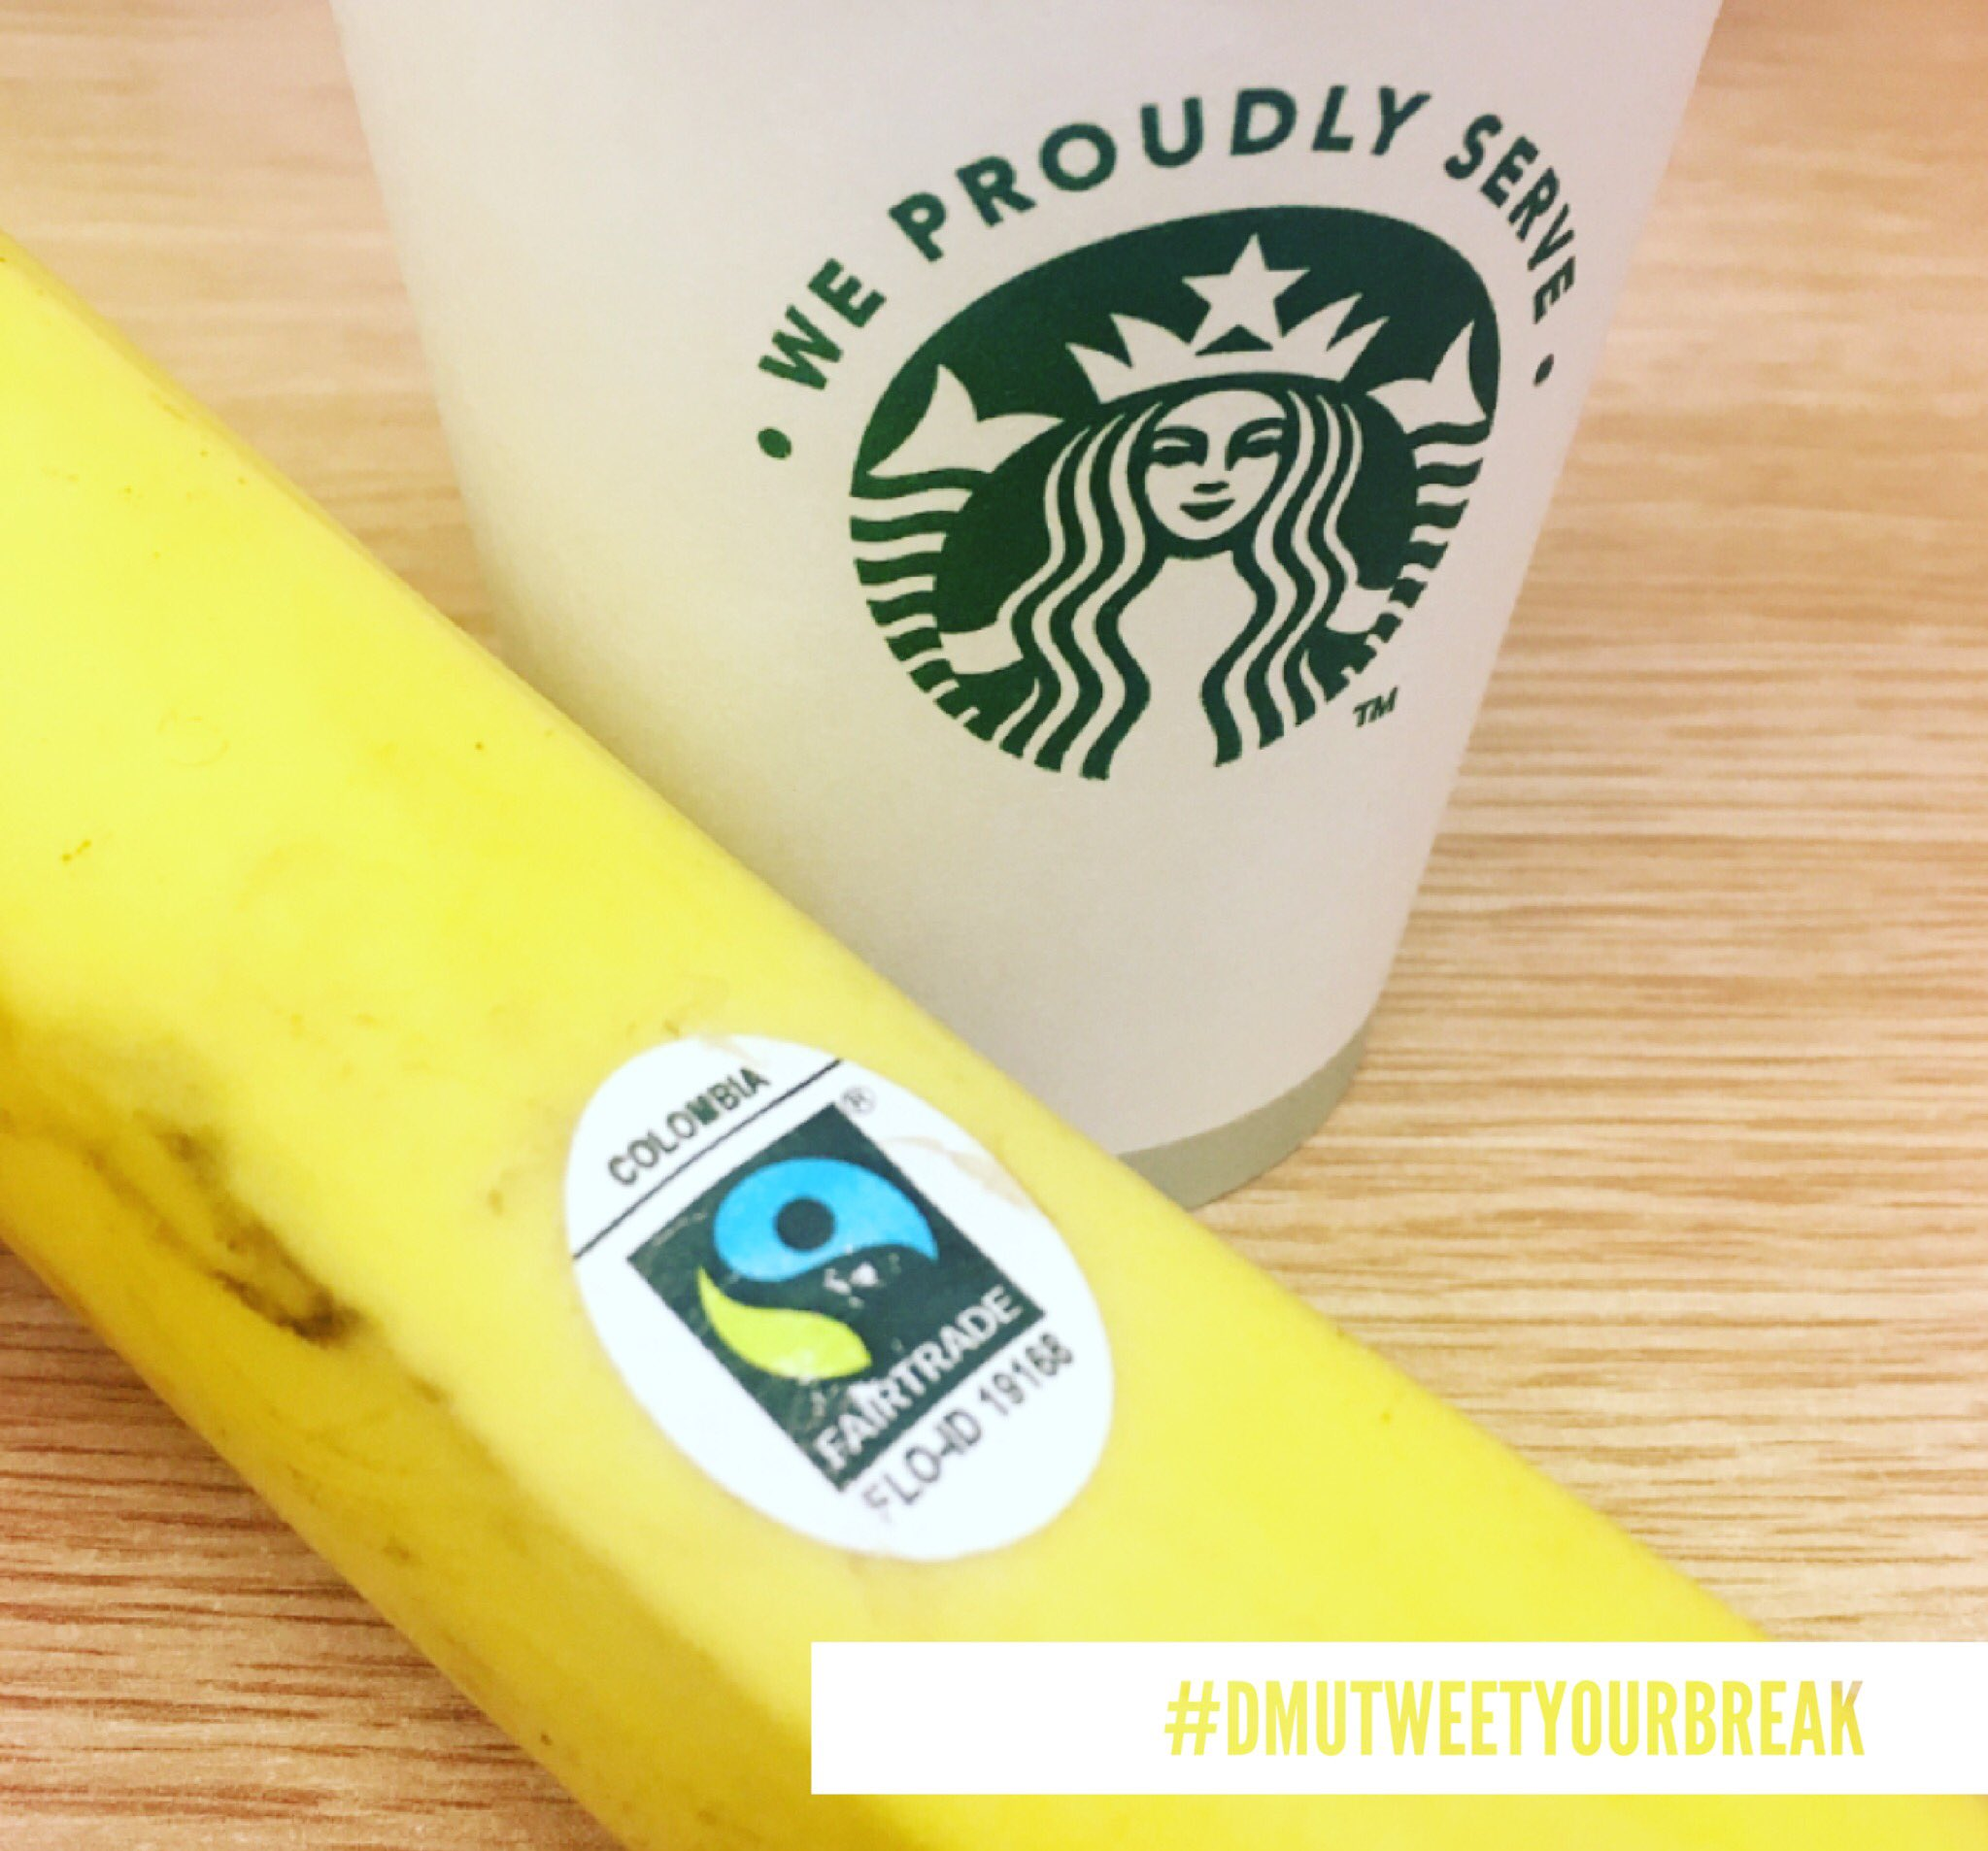 Great start to our day! Fairtrade coffee and a Fairtrade banana #dmutweetyourbreak #fairtradefortnight https://t.co/njg1A4brZE